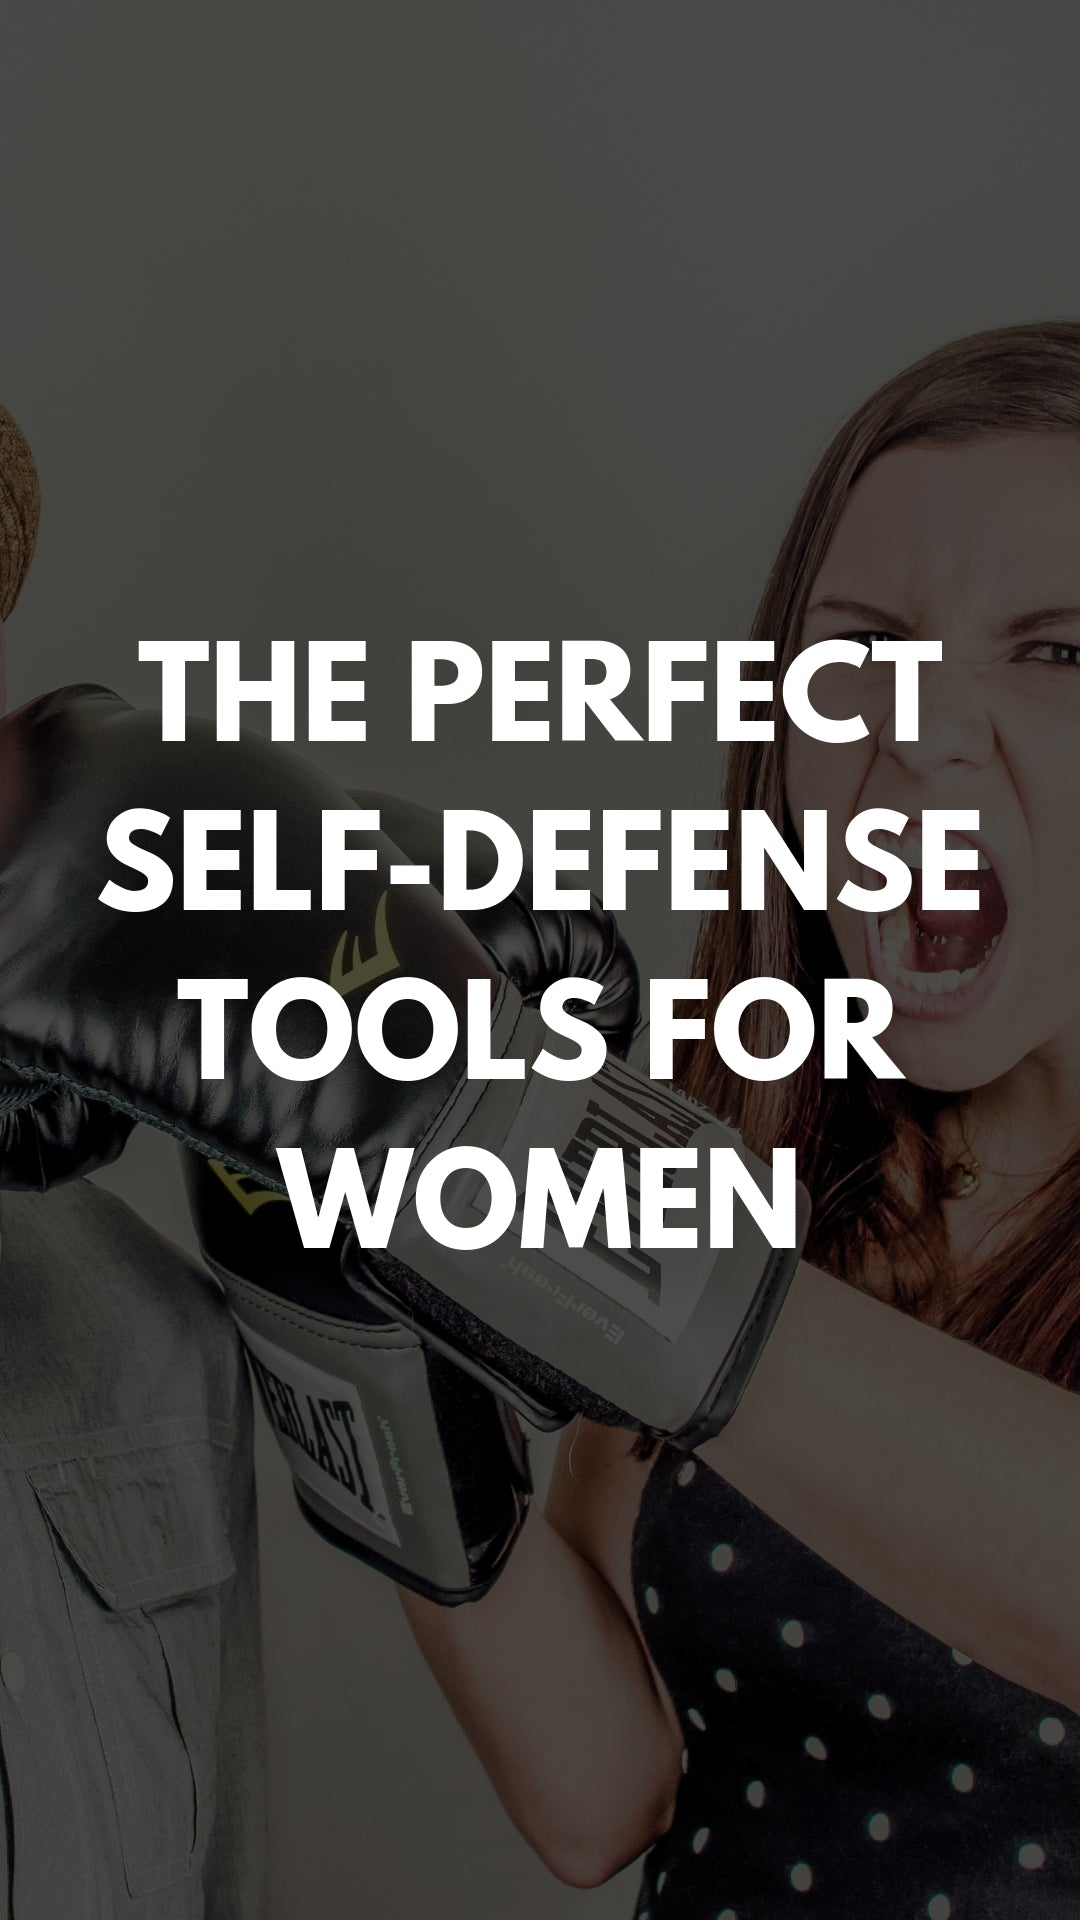 THE PERFECT SELF-DEFENSE TOOLS FOR WOMEN